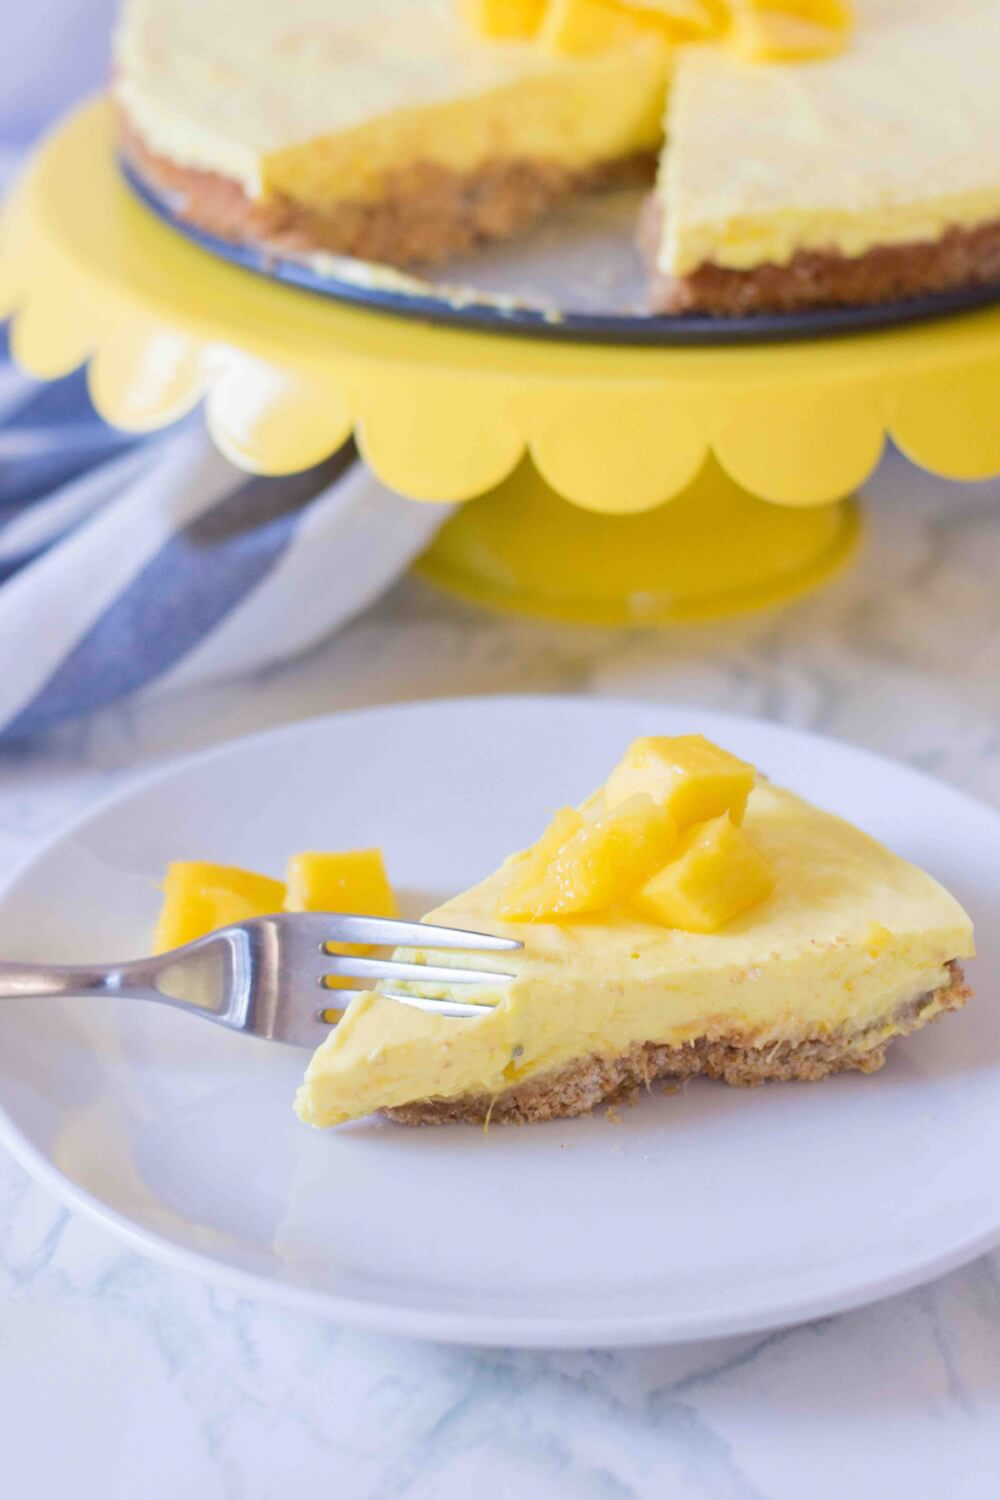 Best Mango dessert recipes by top Hawaii blog Hawaii Travel with Kids: No Bake Mango Mousse Cake